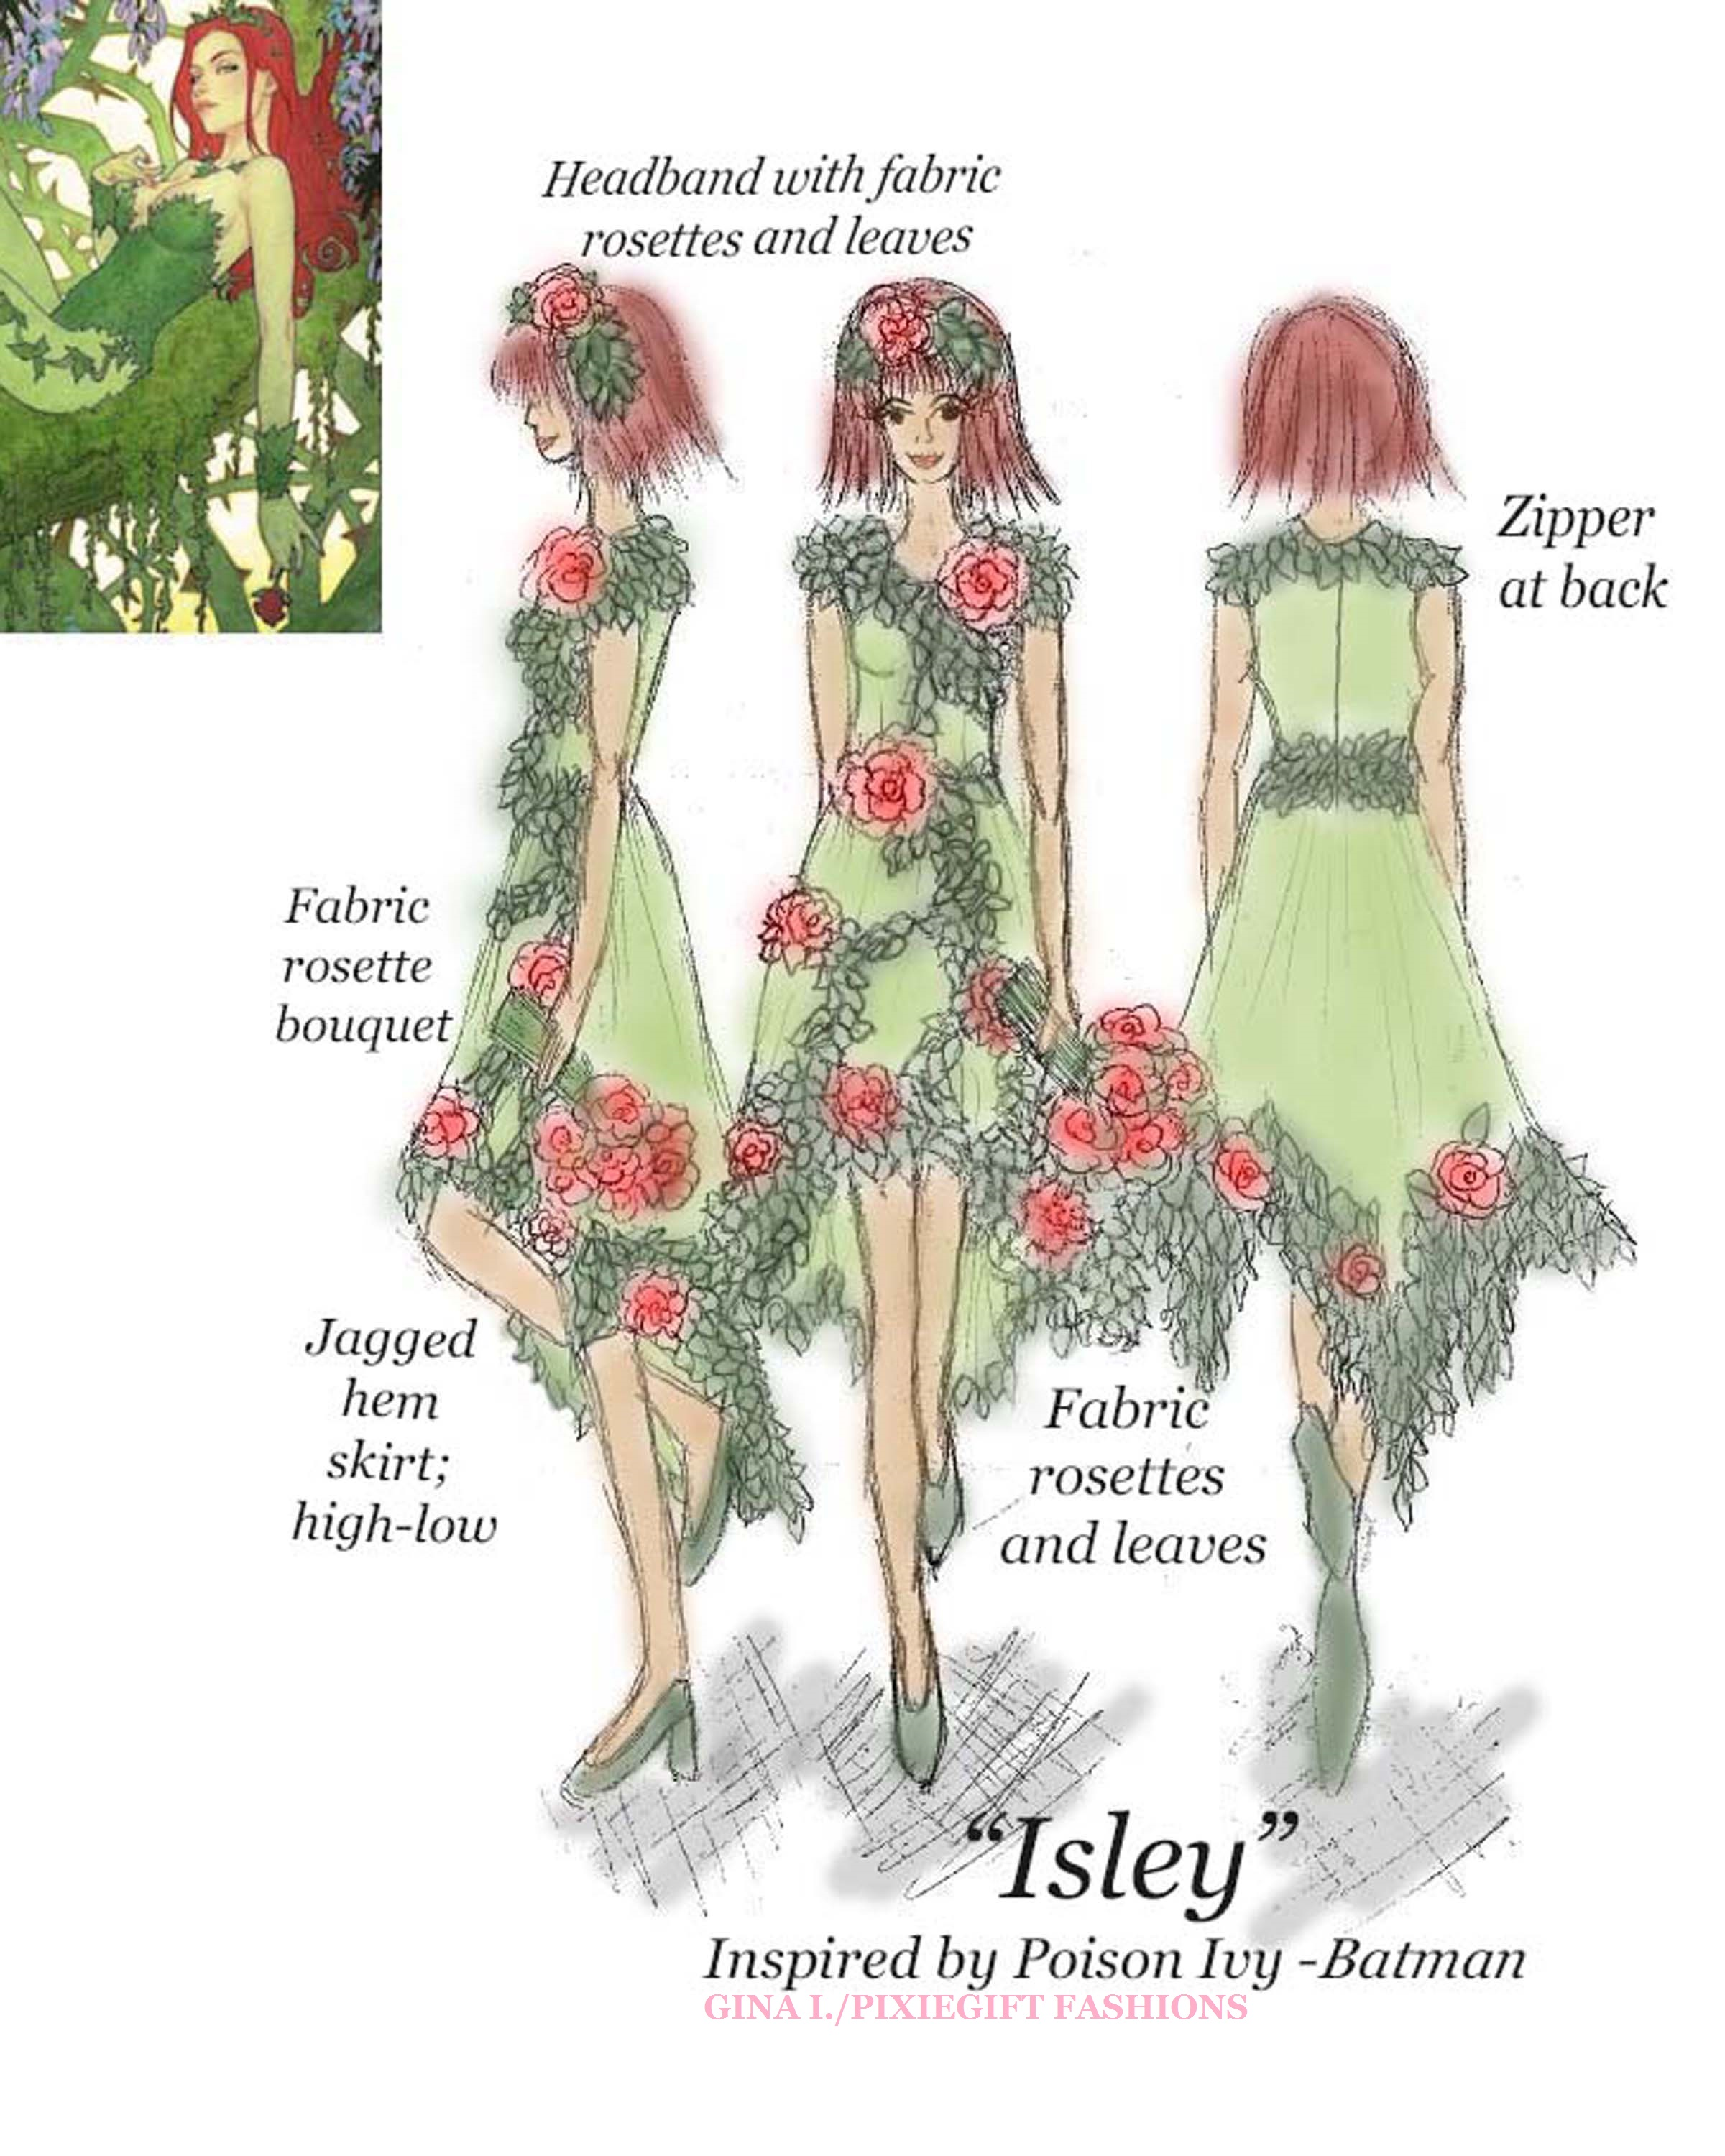 Isley inspired by Poison Ivy - Batman by Pixiegift Fashions